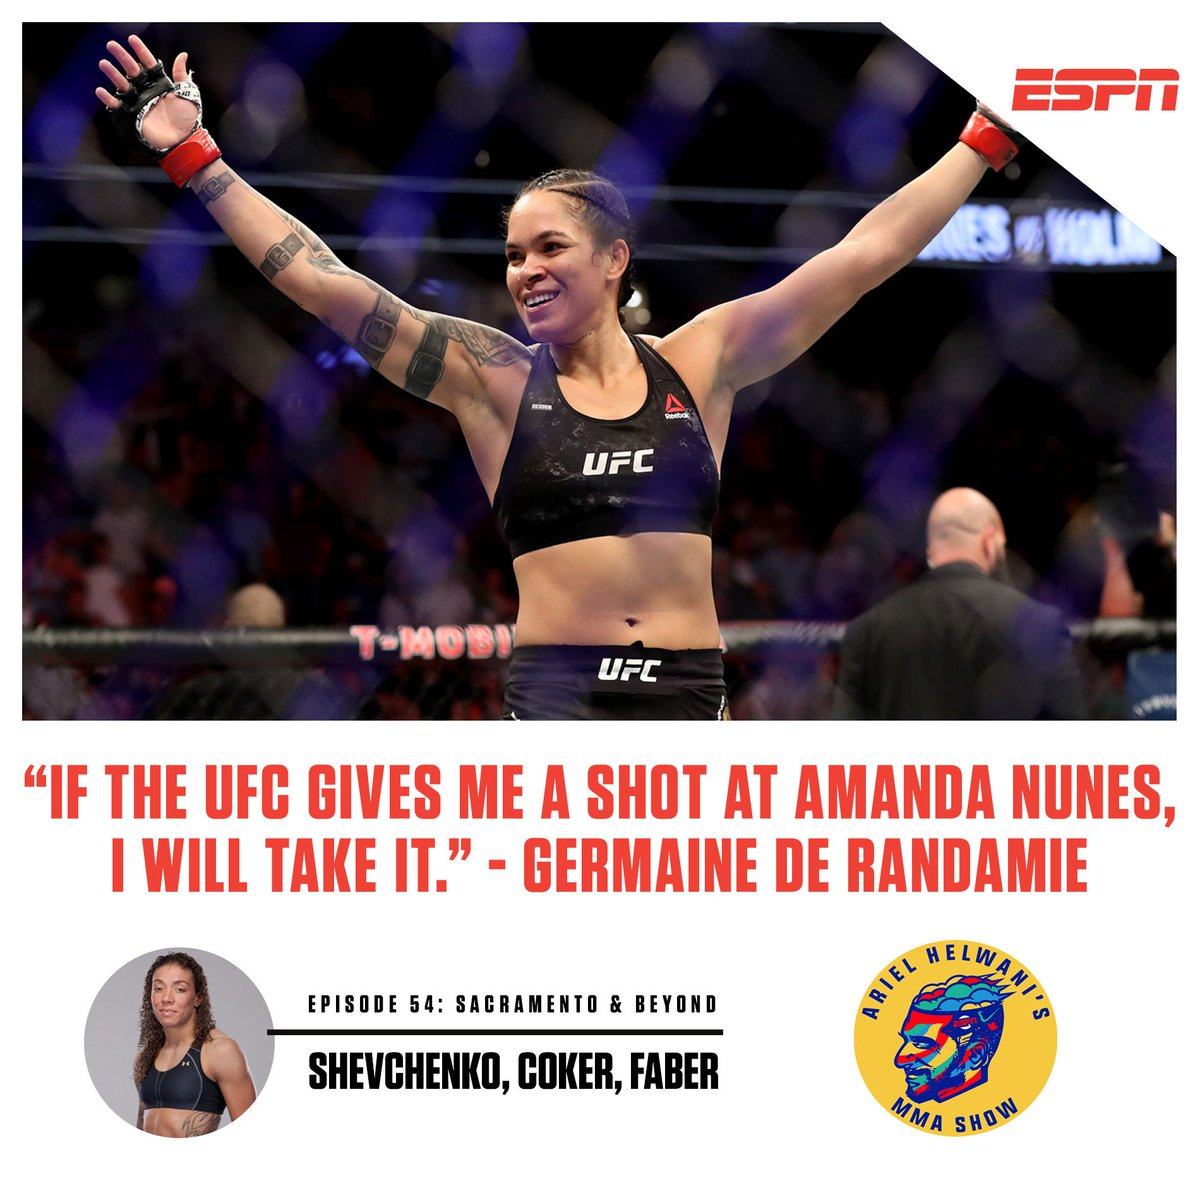 Espn Podcasts On Twitter A Jam Packed Show Following A Jam Packed Weekend In Mma Arielhelwani Breaks Down The Sacramento Event With His Guests Plus The Weekly Speculation On Upcoming Fights Continues Listen Https T Co W7xmsgfg1m